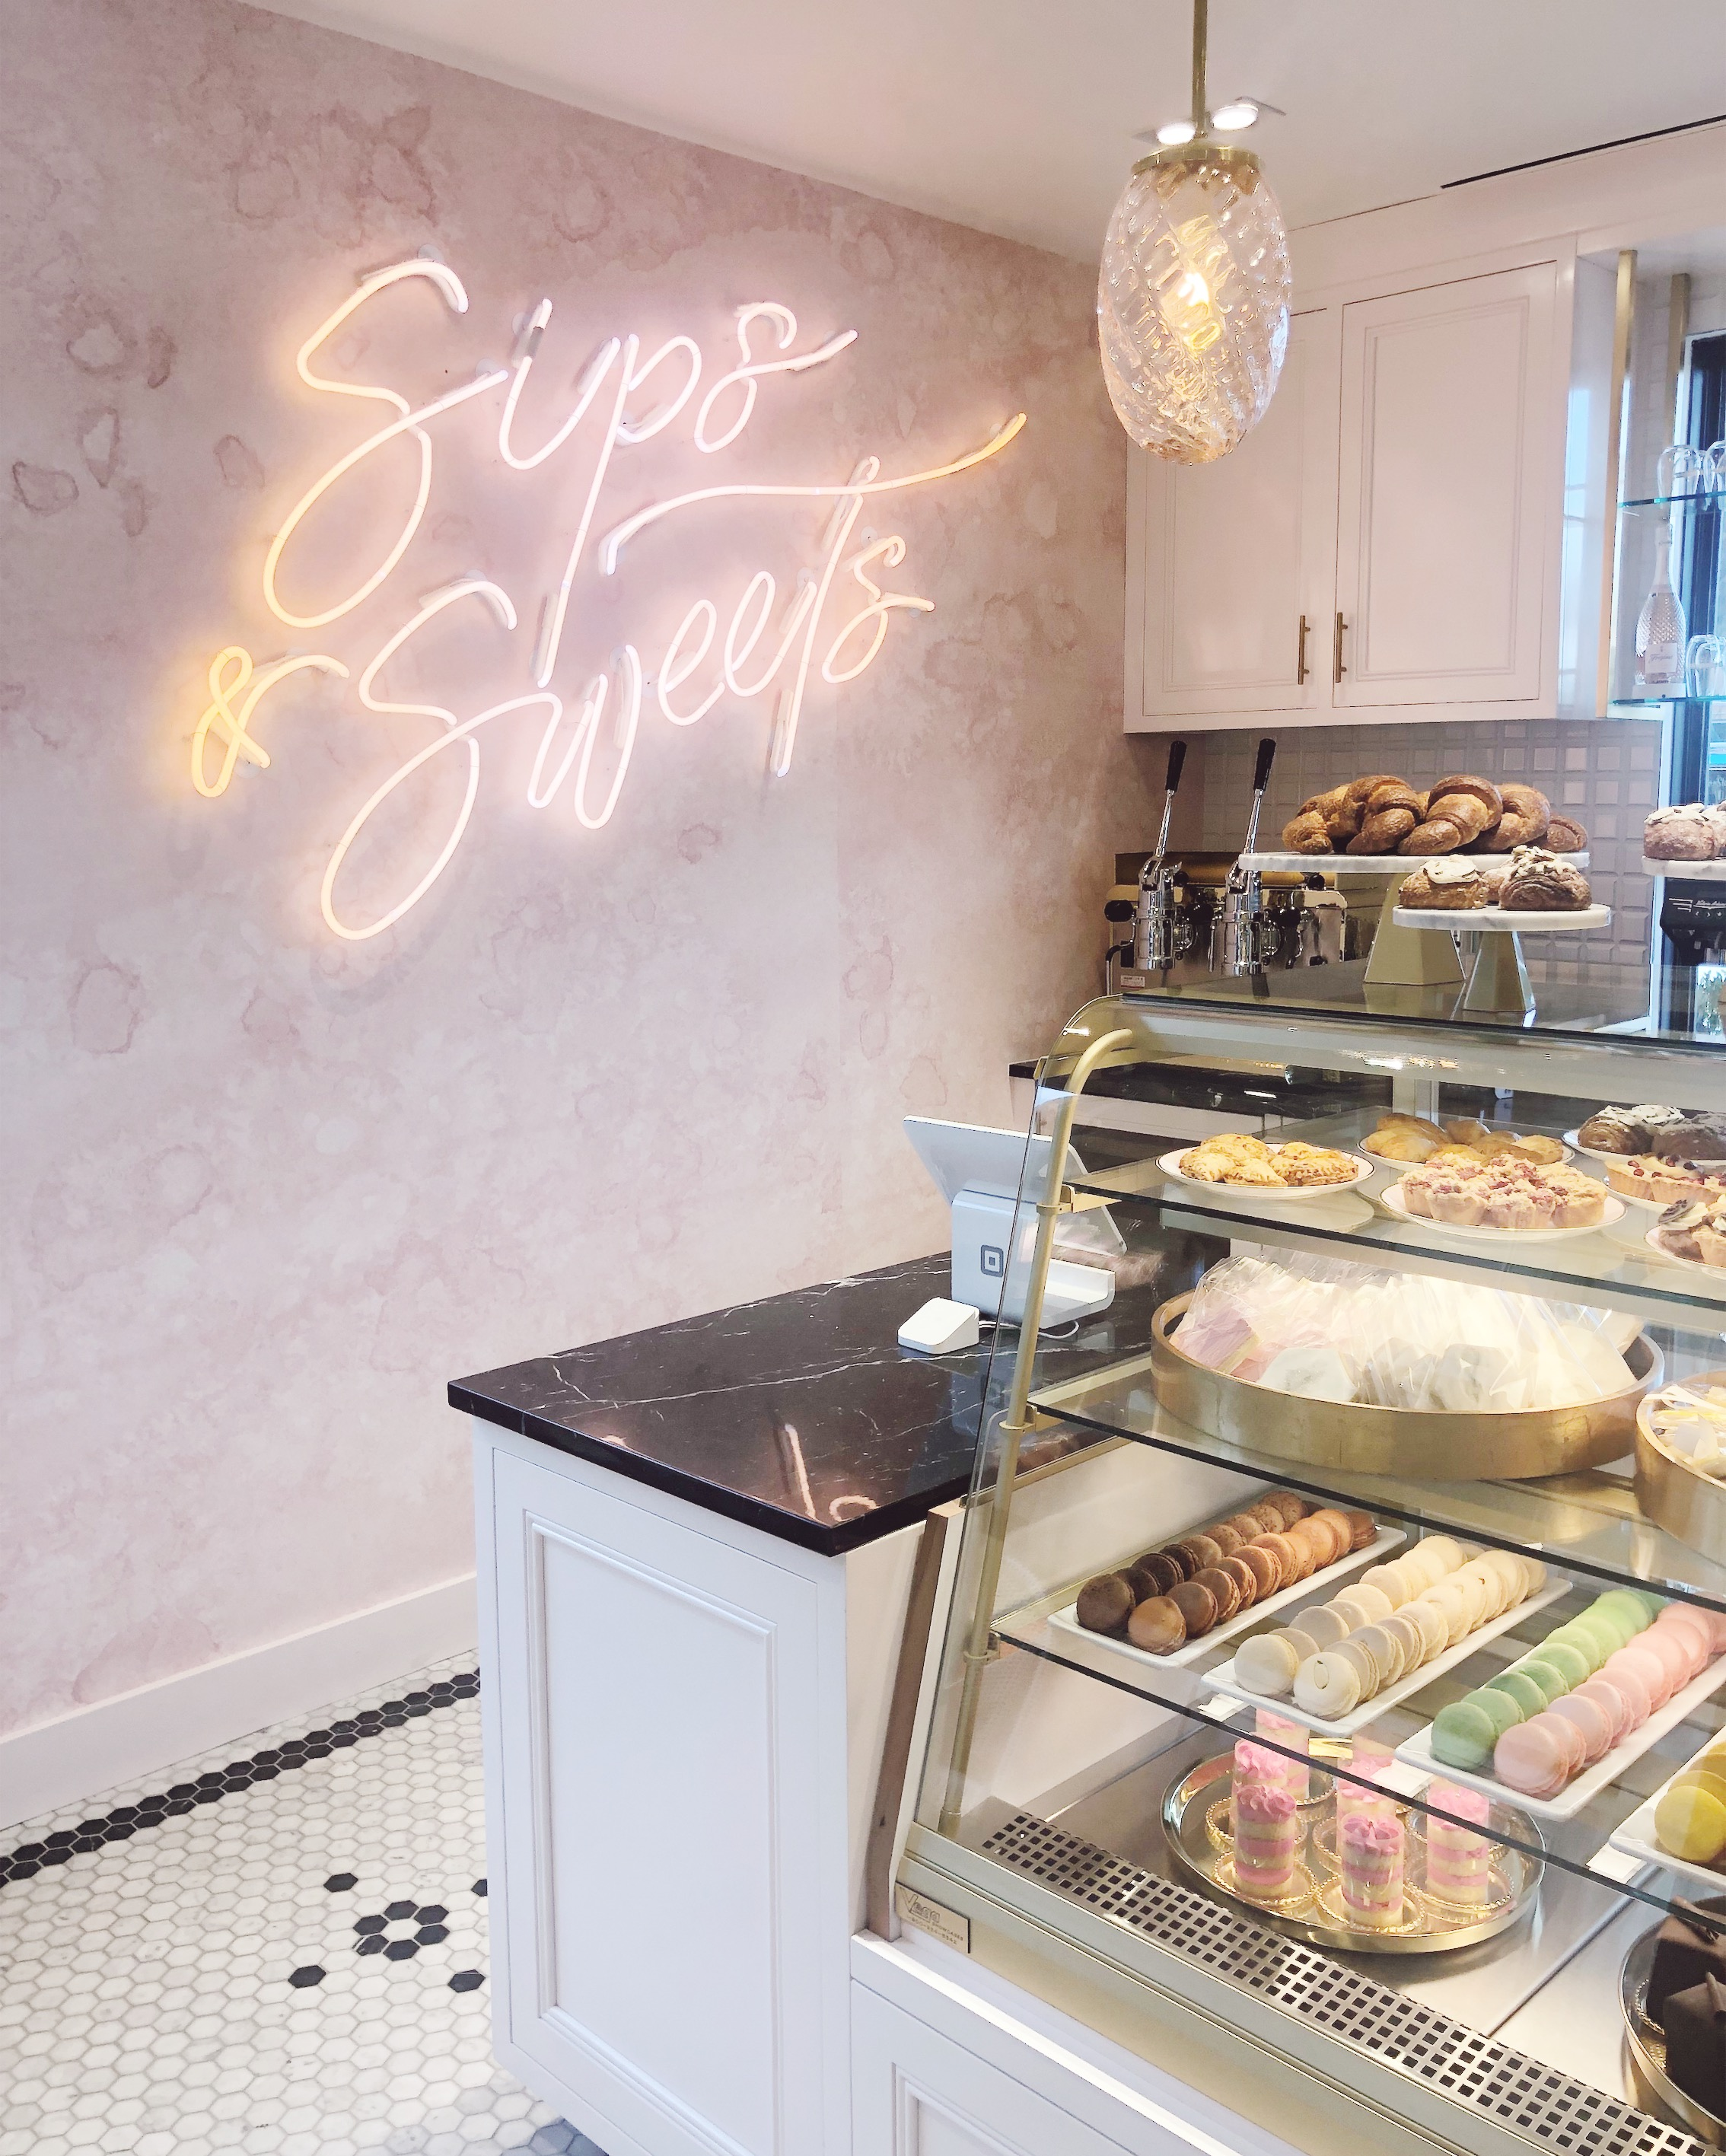 kendra scott sips and sweets cafe